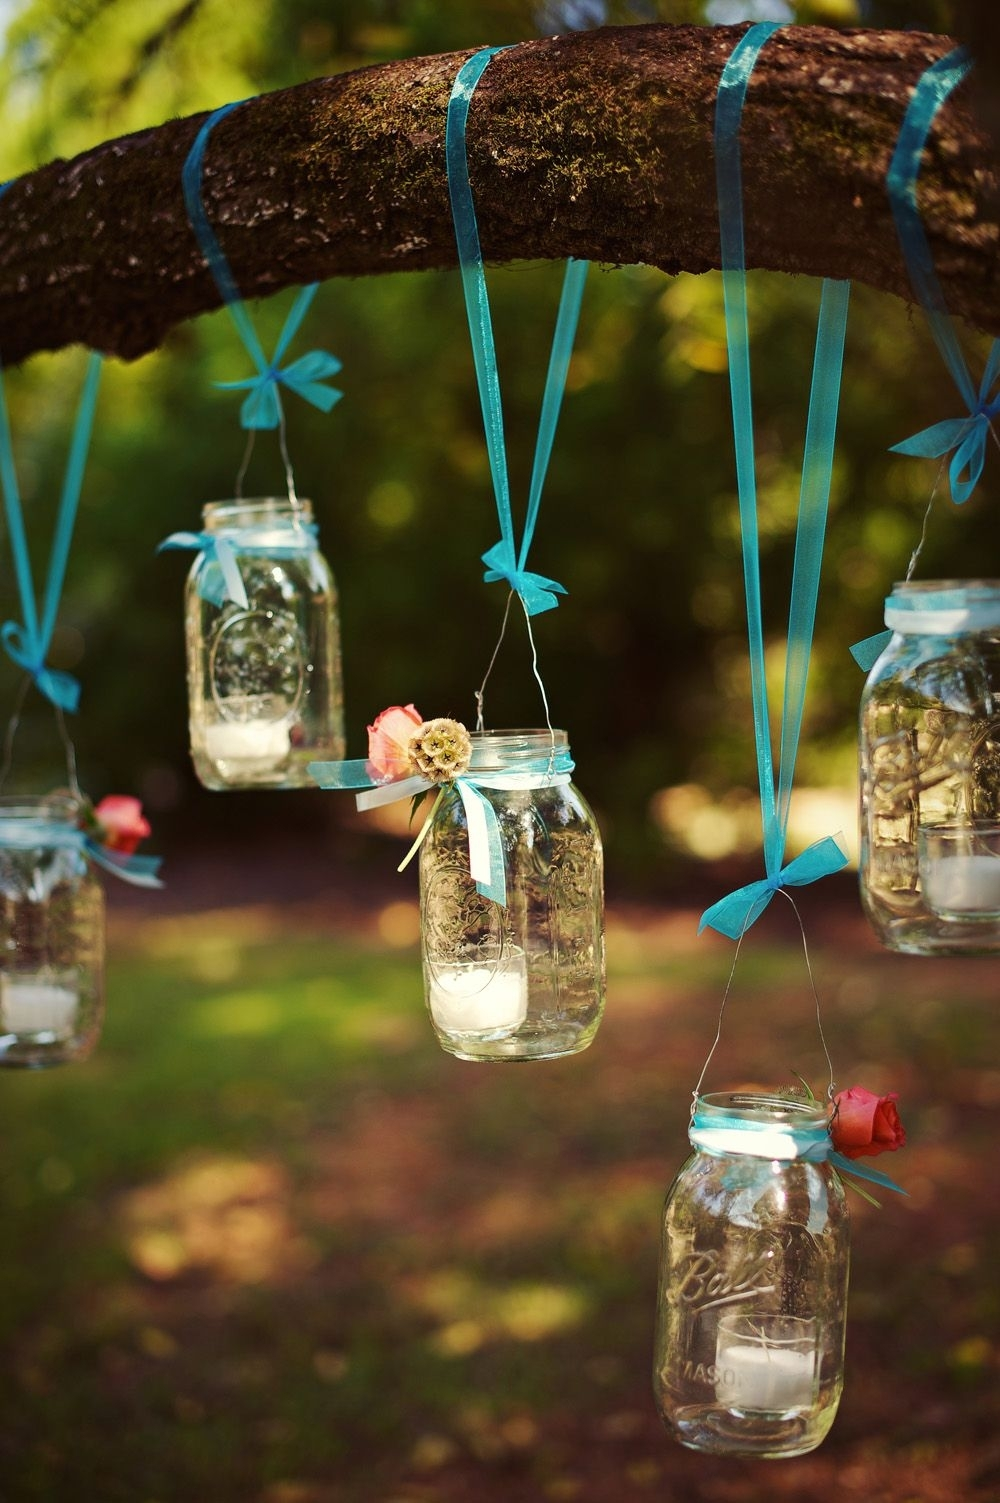 We Love This Rustic Outdoor Wedding To The Mountains And Back | Tree Throughout Outdoor Hanging Mason Jar Lights (View 14 of 15)